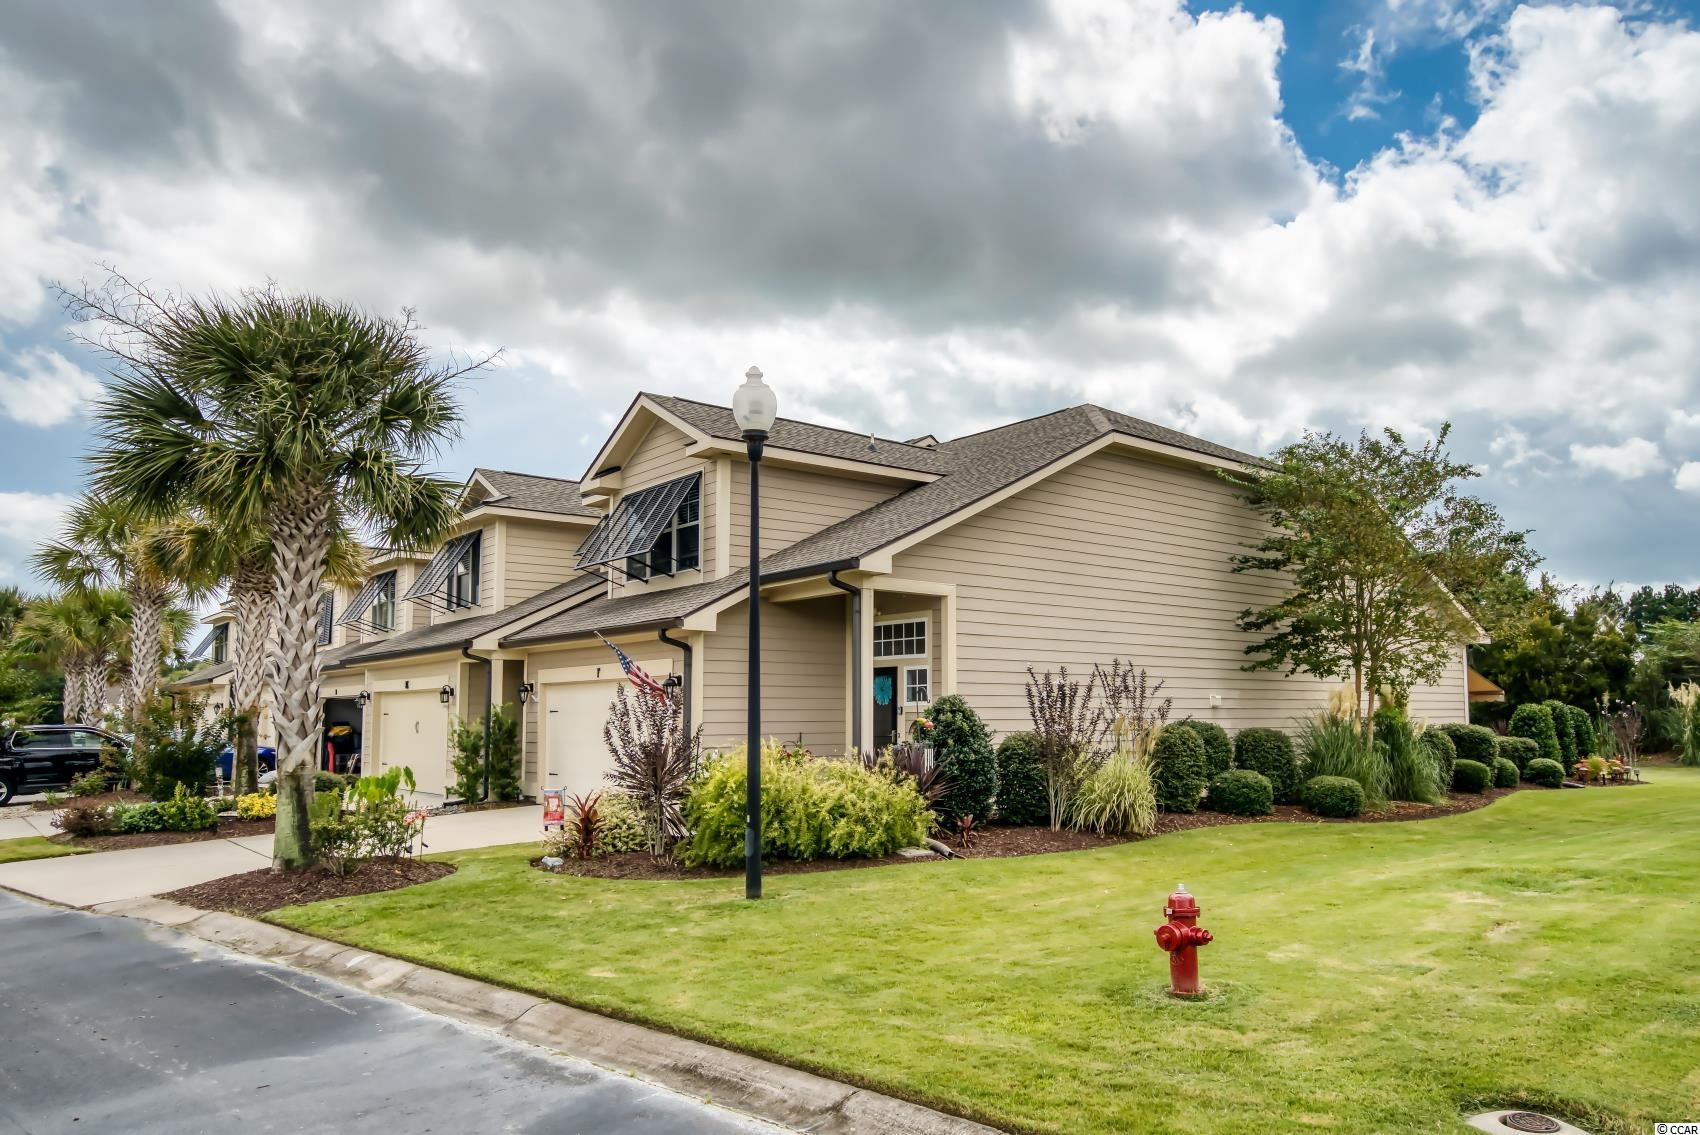 Parmelee is located in Murrells Inlet, just 5 minutes to the historic Marsh Walk, numerous grocery stores, and shopping. Excellent, 3BR 2.5 BA End unit townhome. This unit includes a new roof, HVAC, handler and all new garage door mechanics, which were installed in 2021. All warranties are transferable to the new owner. Primary Suite located on the 1st Floor with a large walk-in closet, and an ensuite bath with double vanity, garden tub, separate shower and linen closet. Entrance leads to an airy foyer with tall ceilings. The foyer, off the main living area, also hosts a conveniently located half bath.  Luxury plank flooring flows throughout, with carpet only on the staircase. The kitchen has two spacious breakfast bars, LG Stainless appliances, gorgeous granite counters, honey colored cabinets and double stainless sink. The kitchen also offers extra recessed lighting, a pantry, along with a large laundry room with shelving that houses a Front Load Samsung washer & dryer that conveys. This open concept design has a soaring ceiling that opens up to a second story loft area and allows for socializing from the kitchen, dining, and living area. The carpeted staircase with spindles, gives an elegant touch to this home and leads upstairs to a spacious open office or second living area. The upstairs also contains two large bedrooms with walk in closets that share a full bath. There is also a second laundry/storage room. Pull down steps to attic with storage and two additional lighted storage closets are ready to accommodate. Upgraded ceiling fans in every bedroom and living area with matching custom light fixtures throughout this fine home. The incredible 2 car garage is crowned with a wall of NewAge lockable metal cabinetry that conveys. It also has custom paint, two ceiling fans, and high end epoxy finished floors. Exit into the back patio area with a gorgeous decorative and etched concrete, as you sit under a brand new eclipse awning with sunsetter. Don't miss out on th